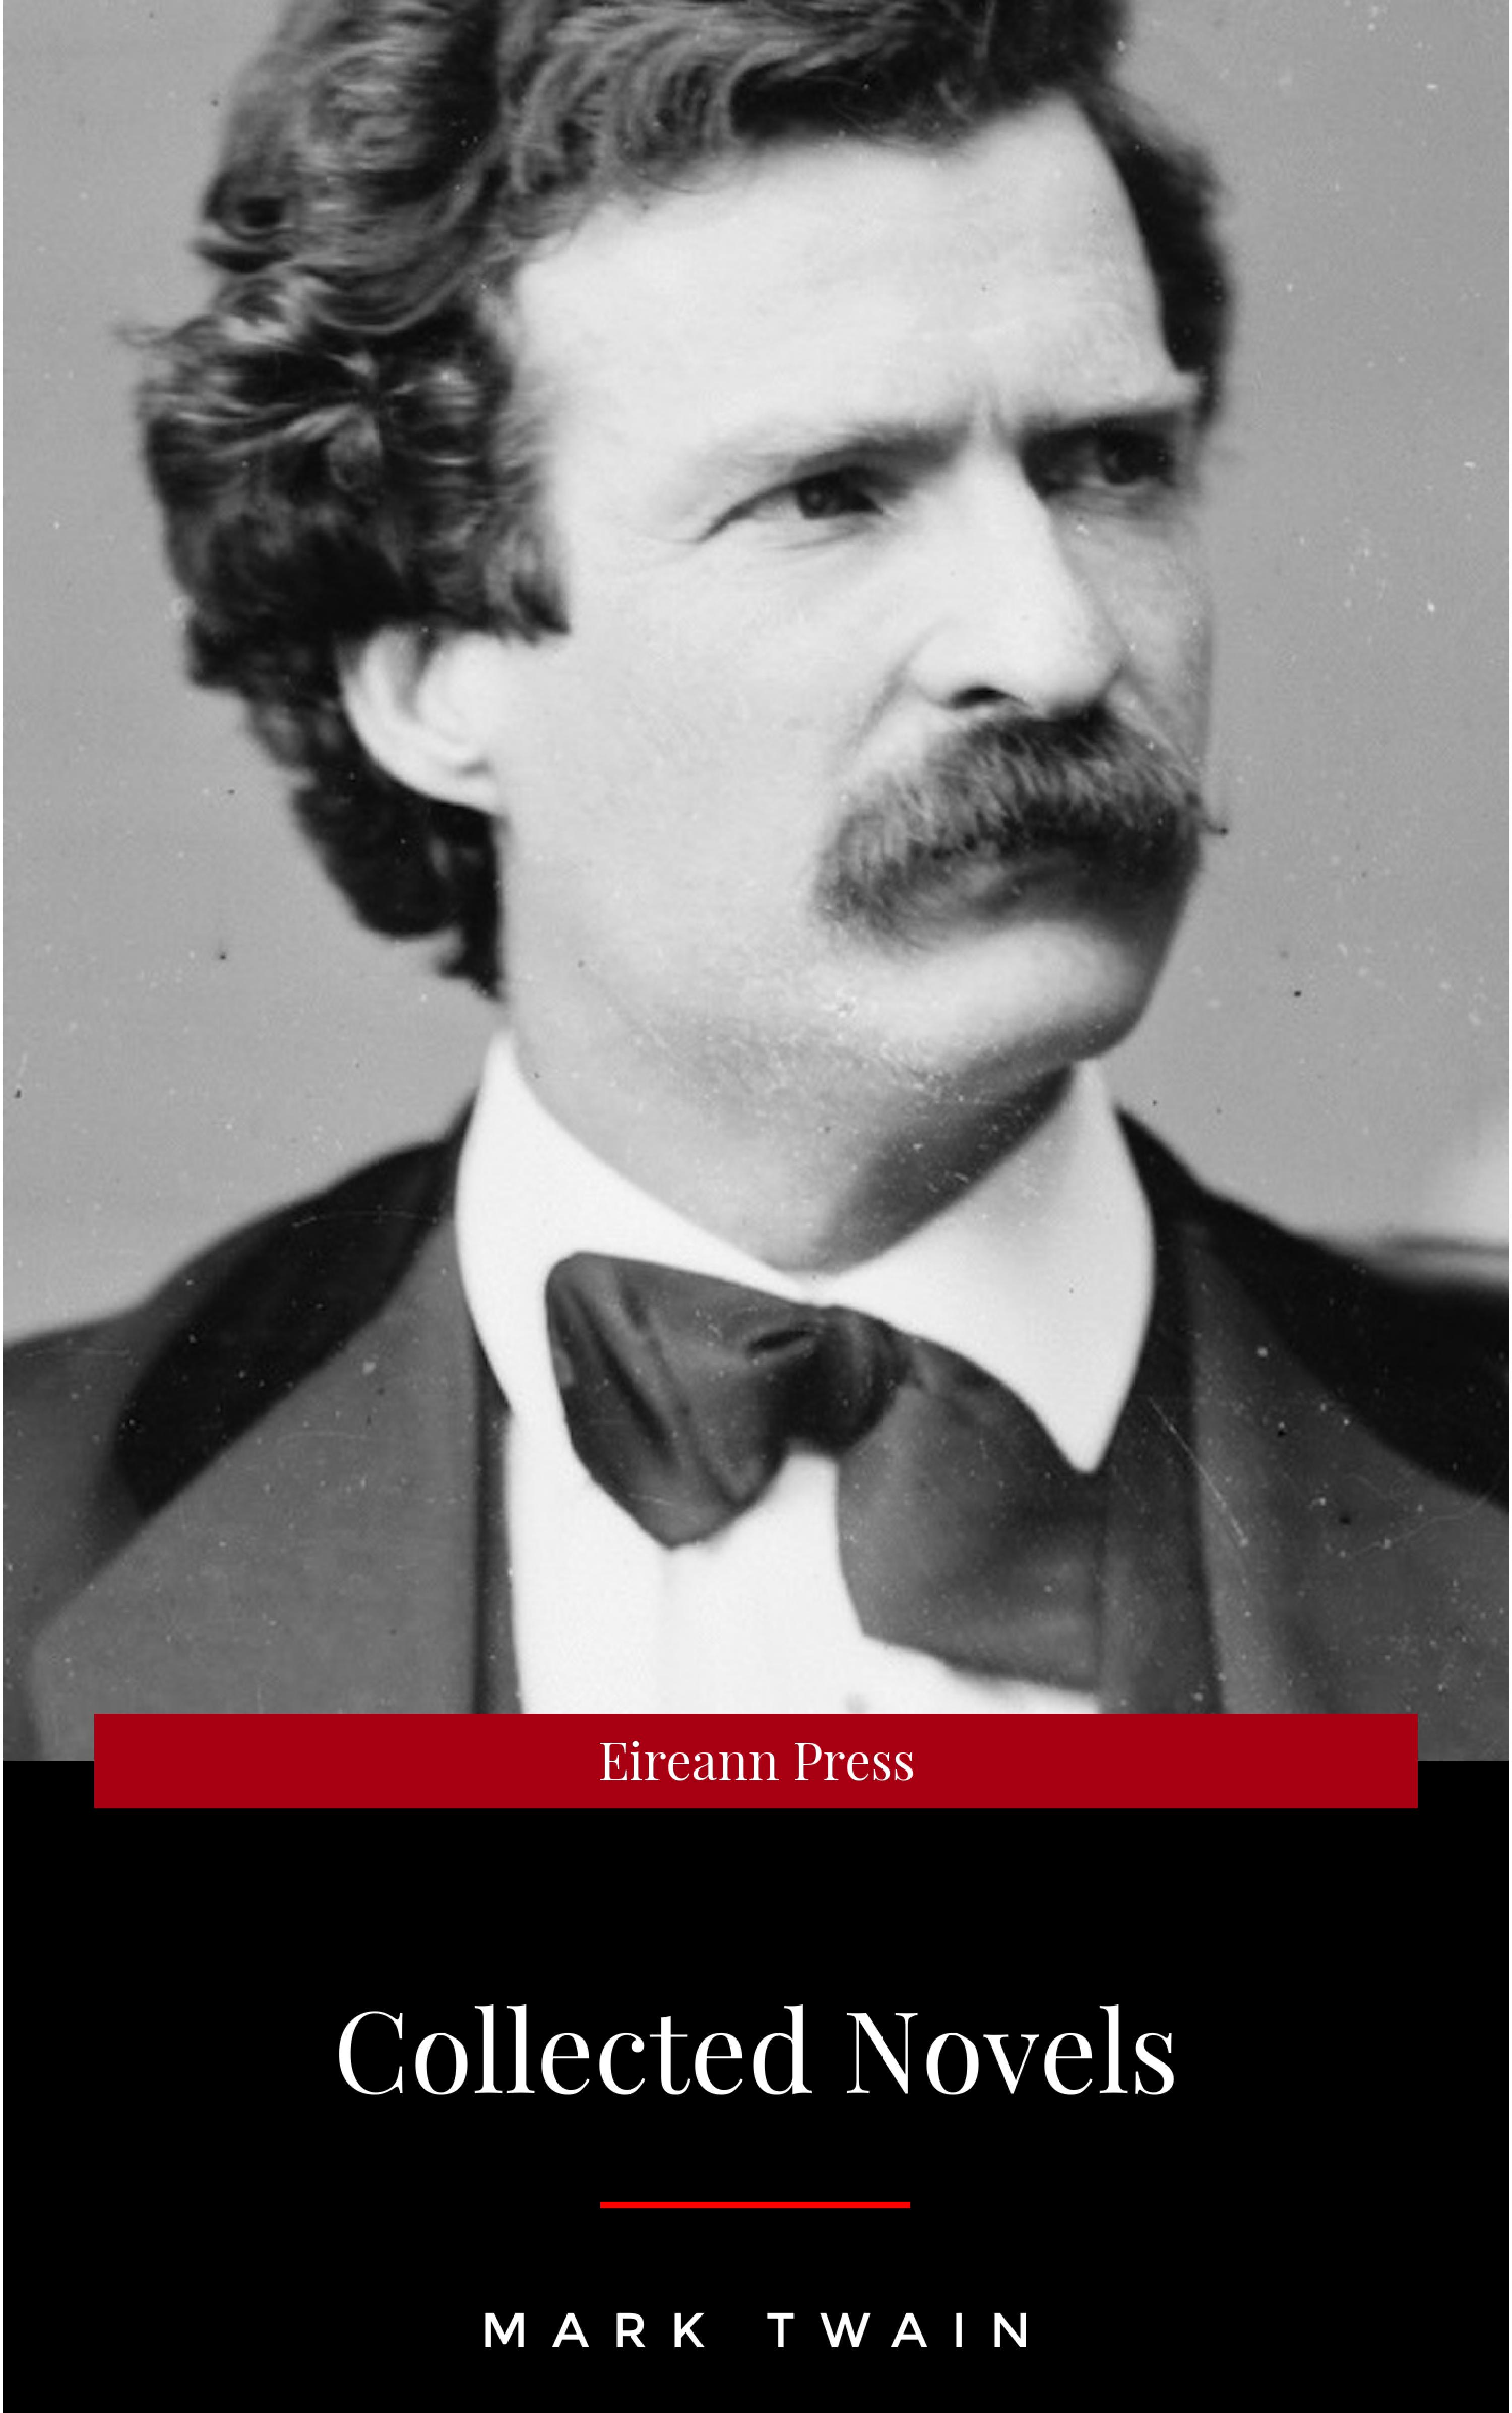 mark twain five novels library of essential writers series